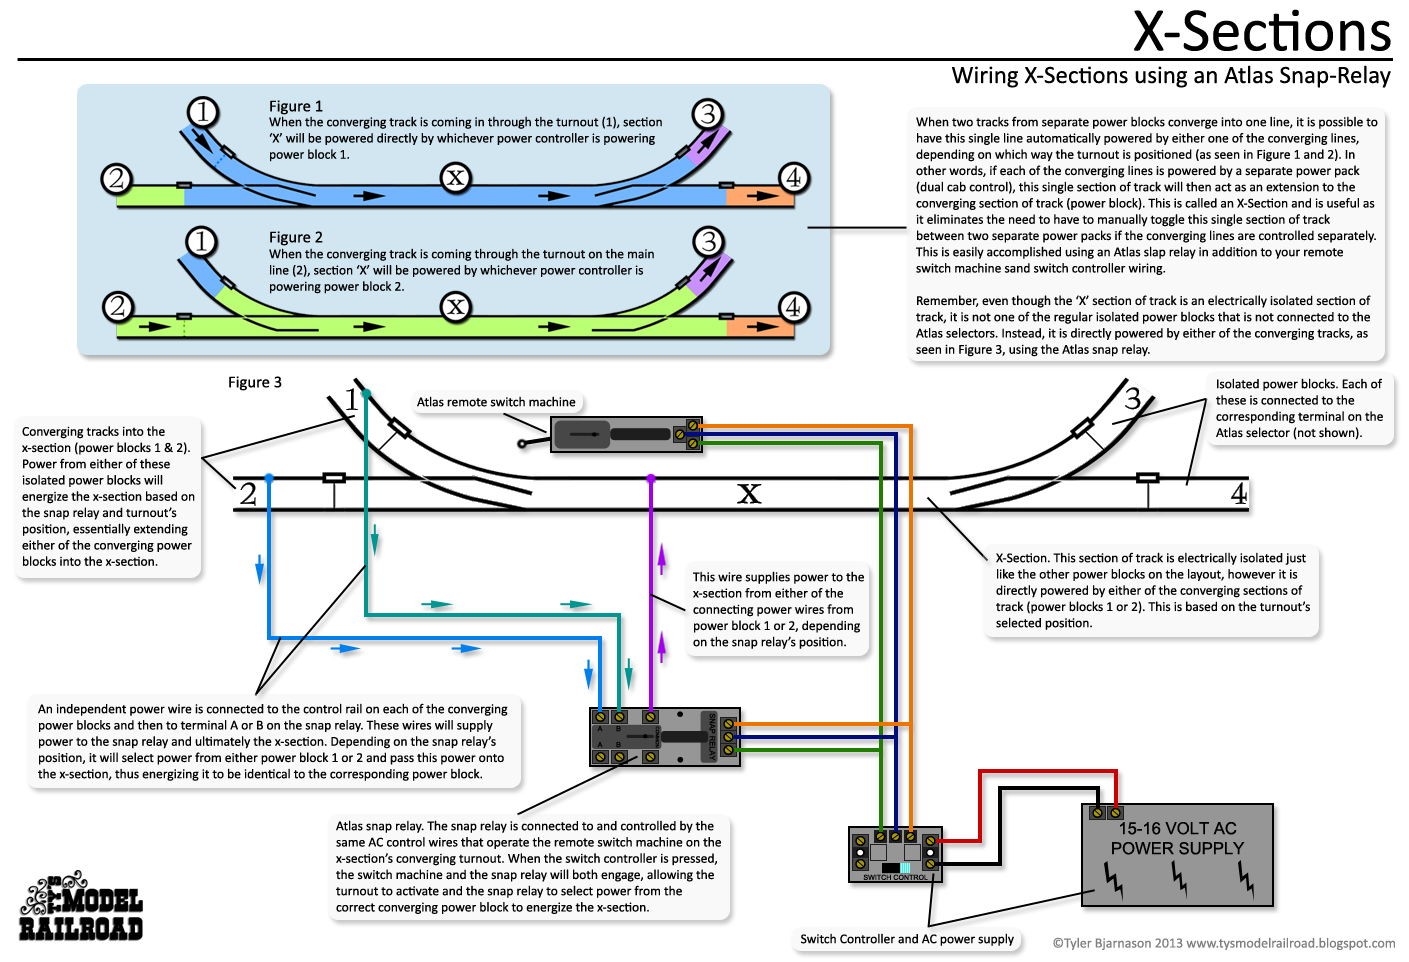 Tys Model Railroad Wiring Diagrams Control Machine Motor How To Wire An X Section Using Atlas Snap Relay And Existing Remote Switch